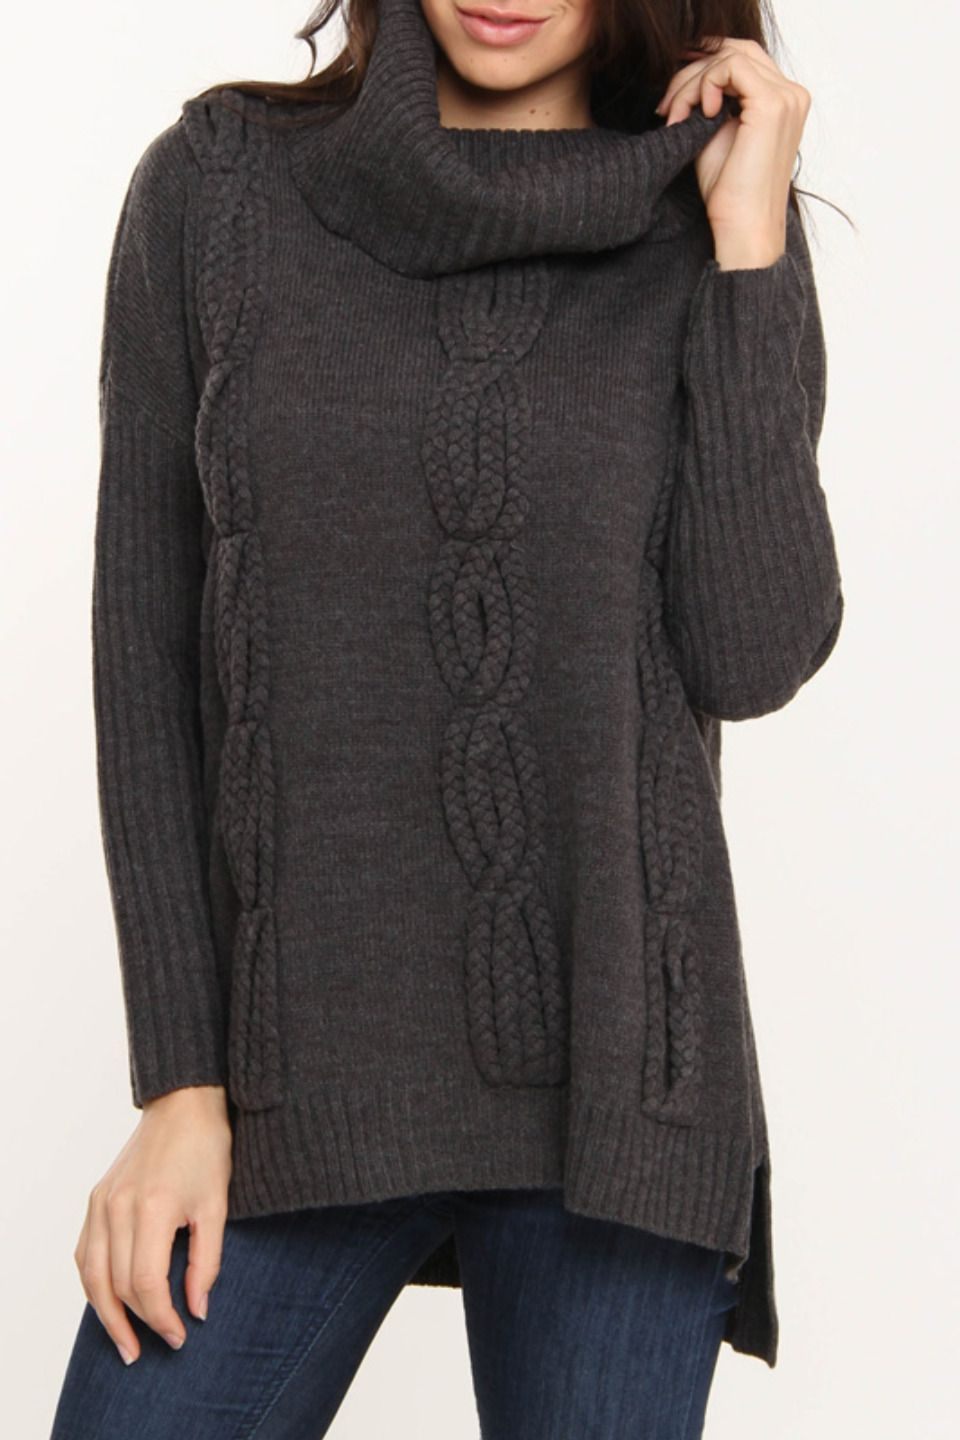 Cable Cowl Neck Sweater In Charcoal... looks sooo comfy! | Clothes ...